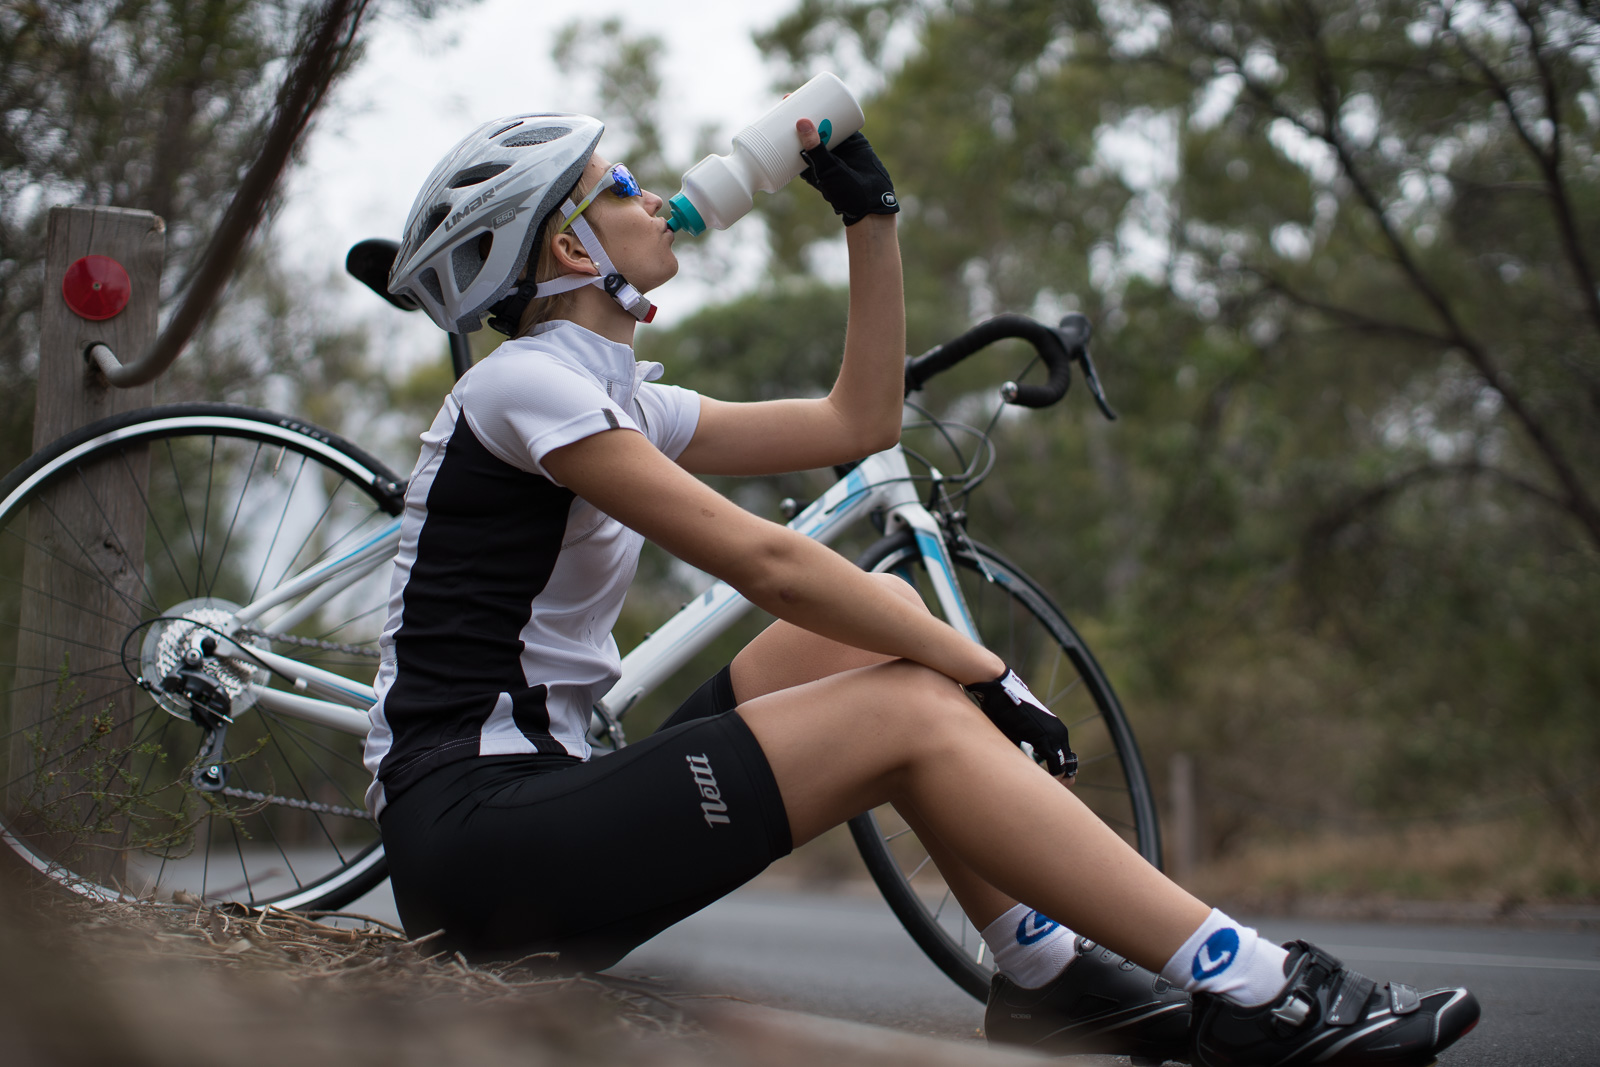 DSC05340 - Reid ® - How to Train and Prepare for Long Distance Cycling